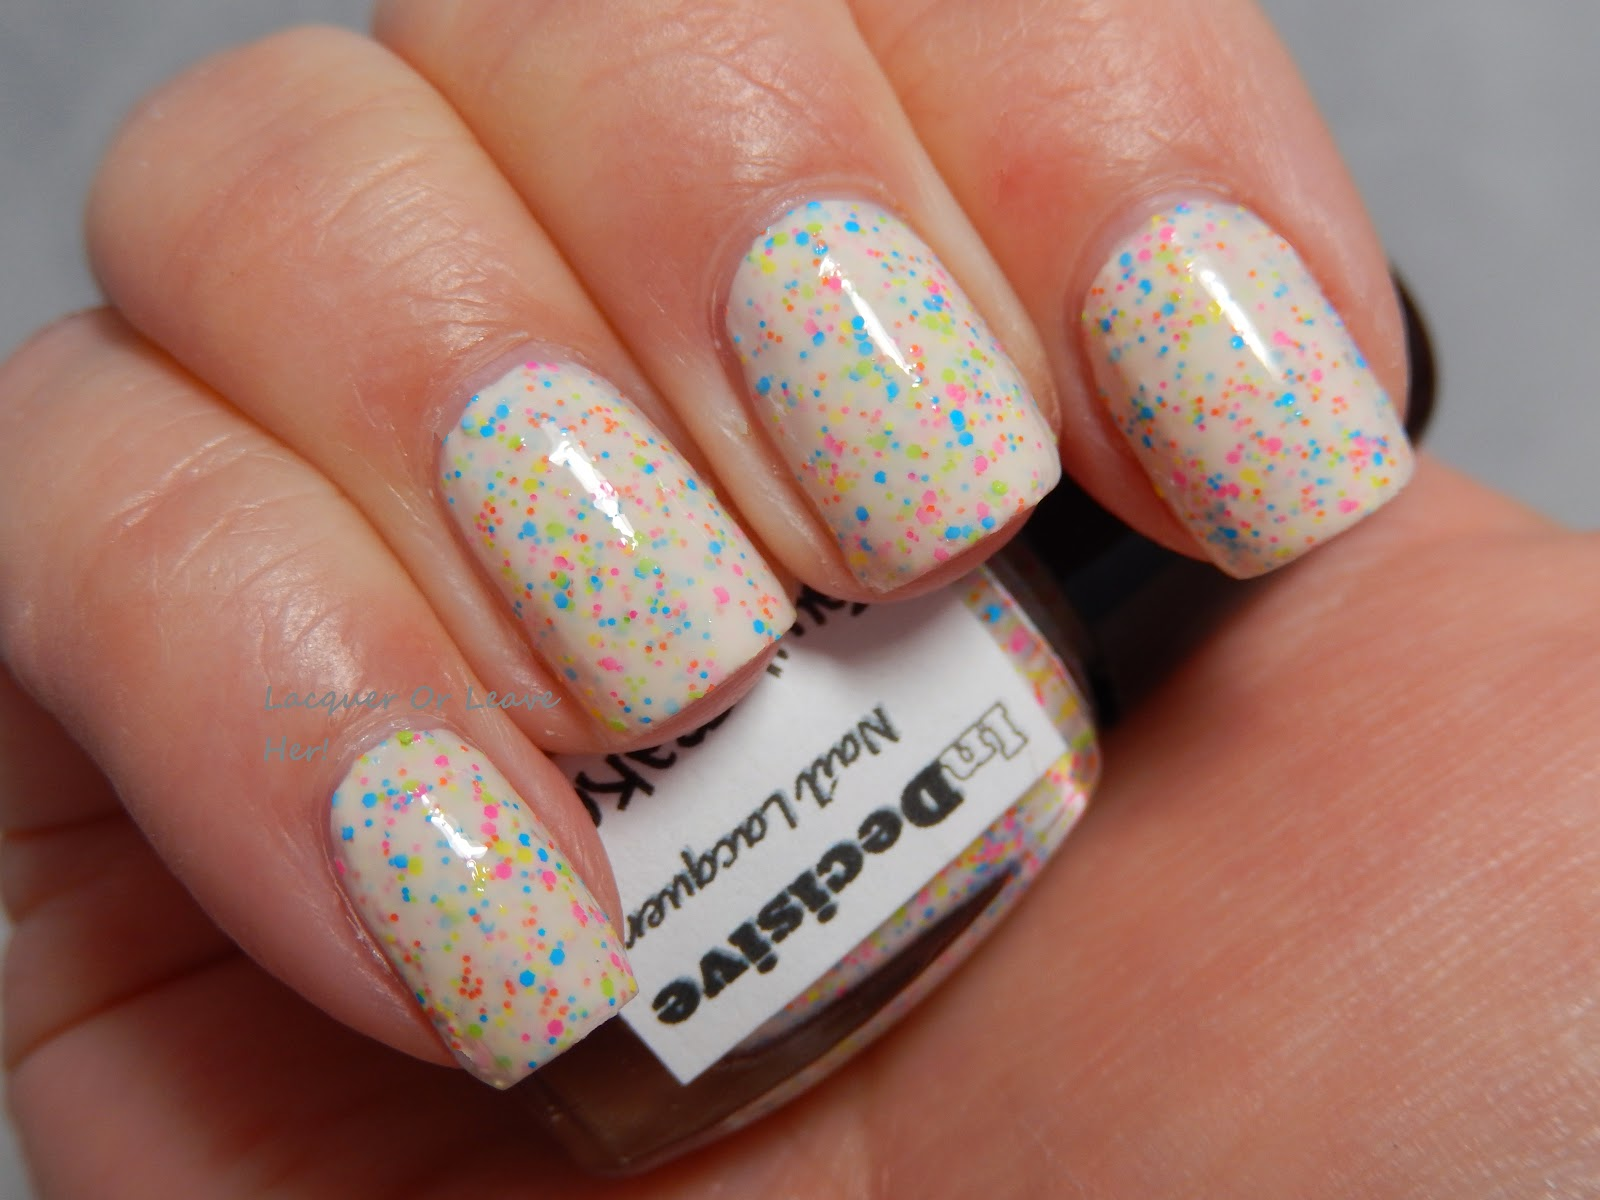 InDecisive-Nail-Lacquer-Jawbreaker